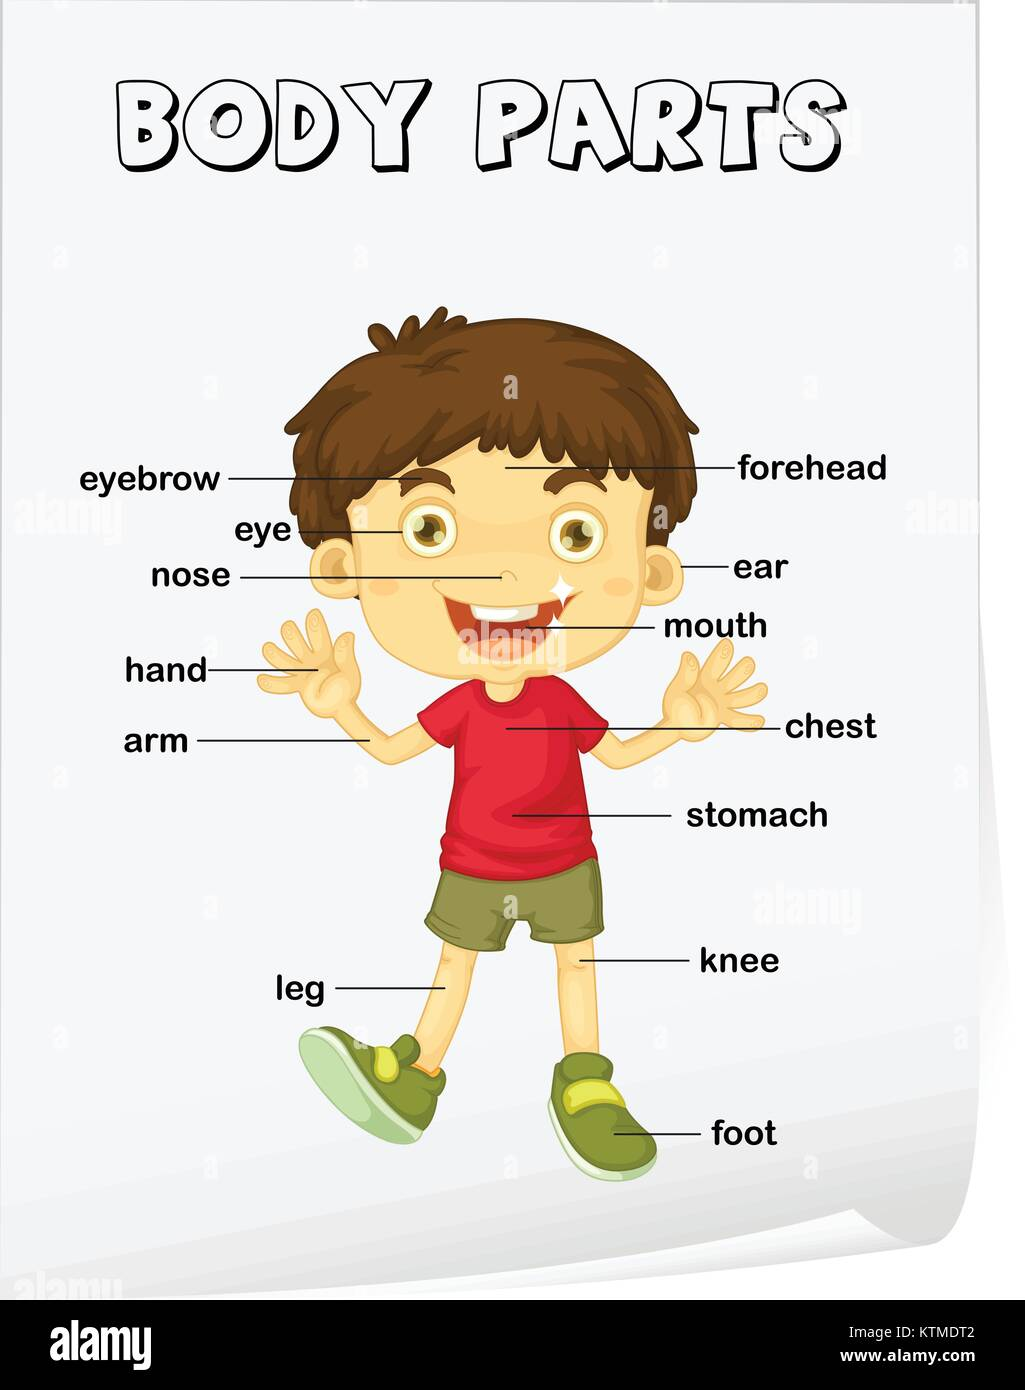 Body Parts Images Worksheet